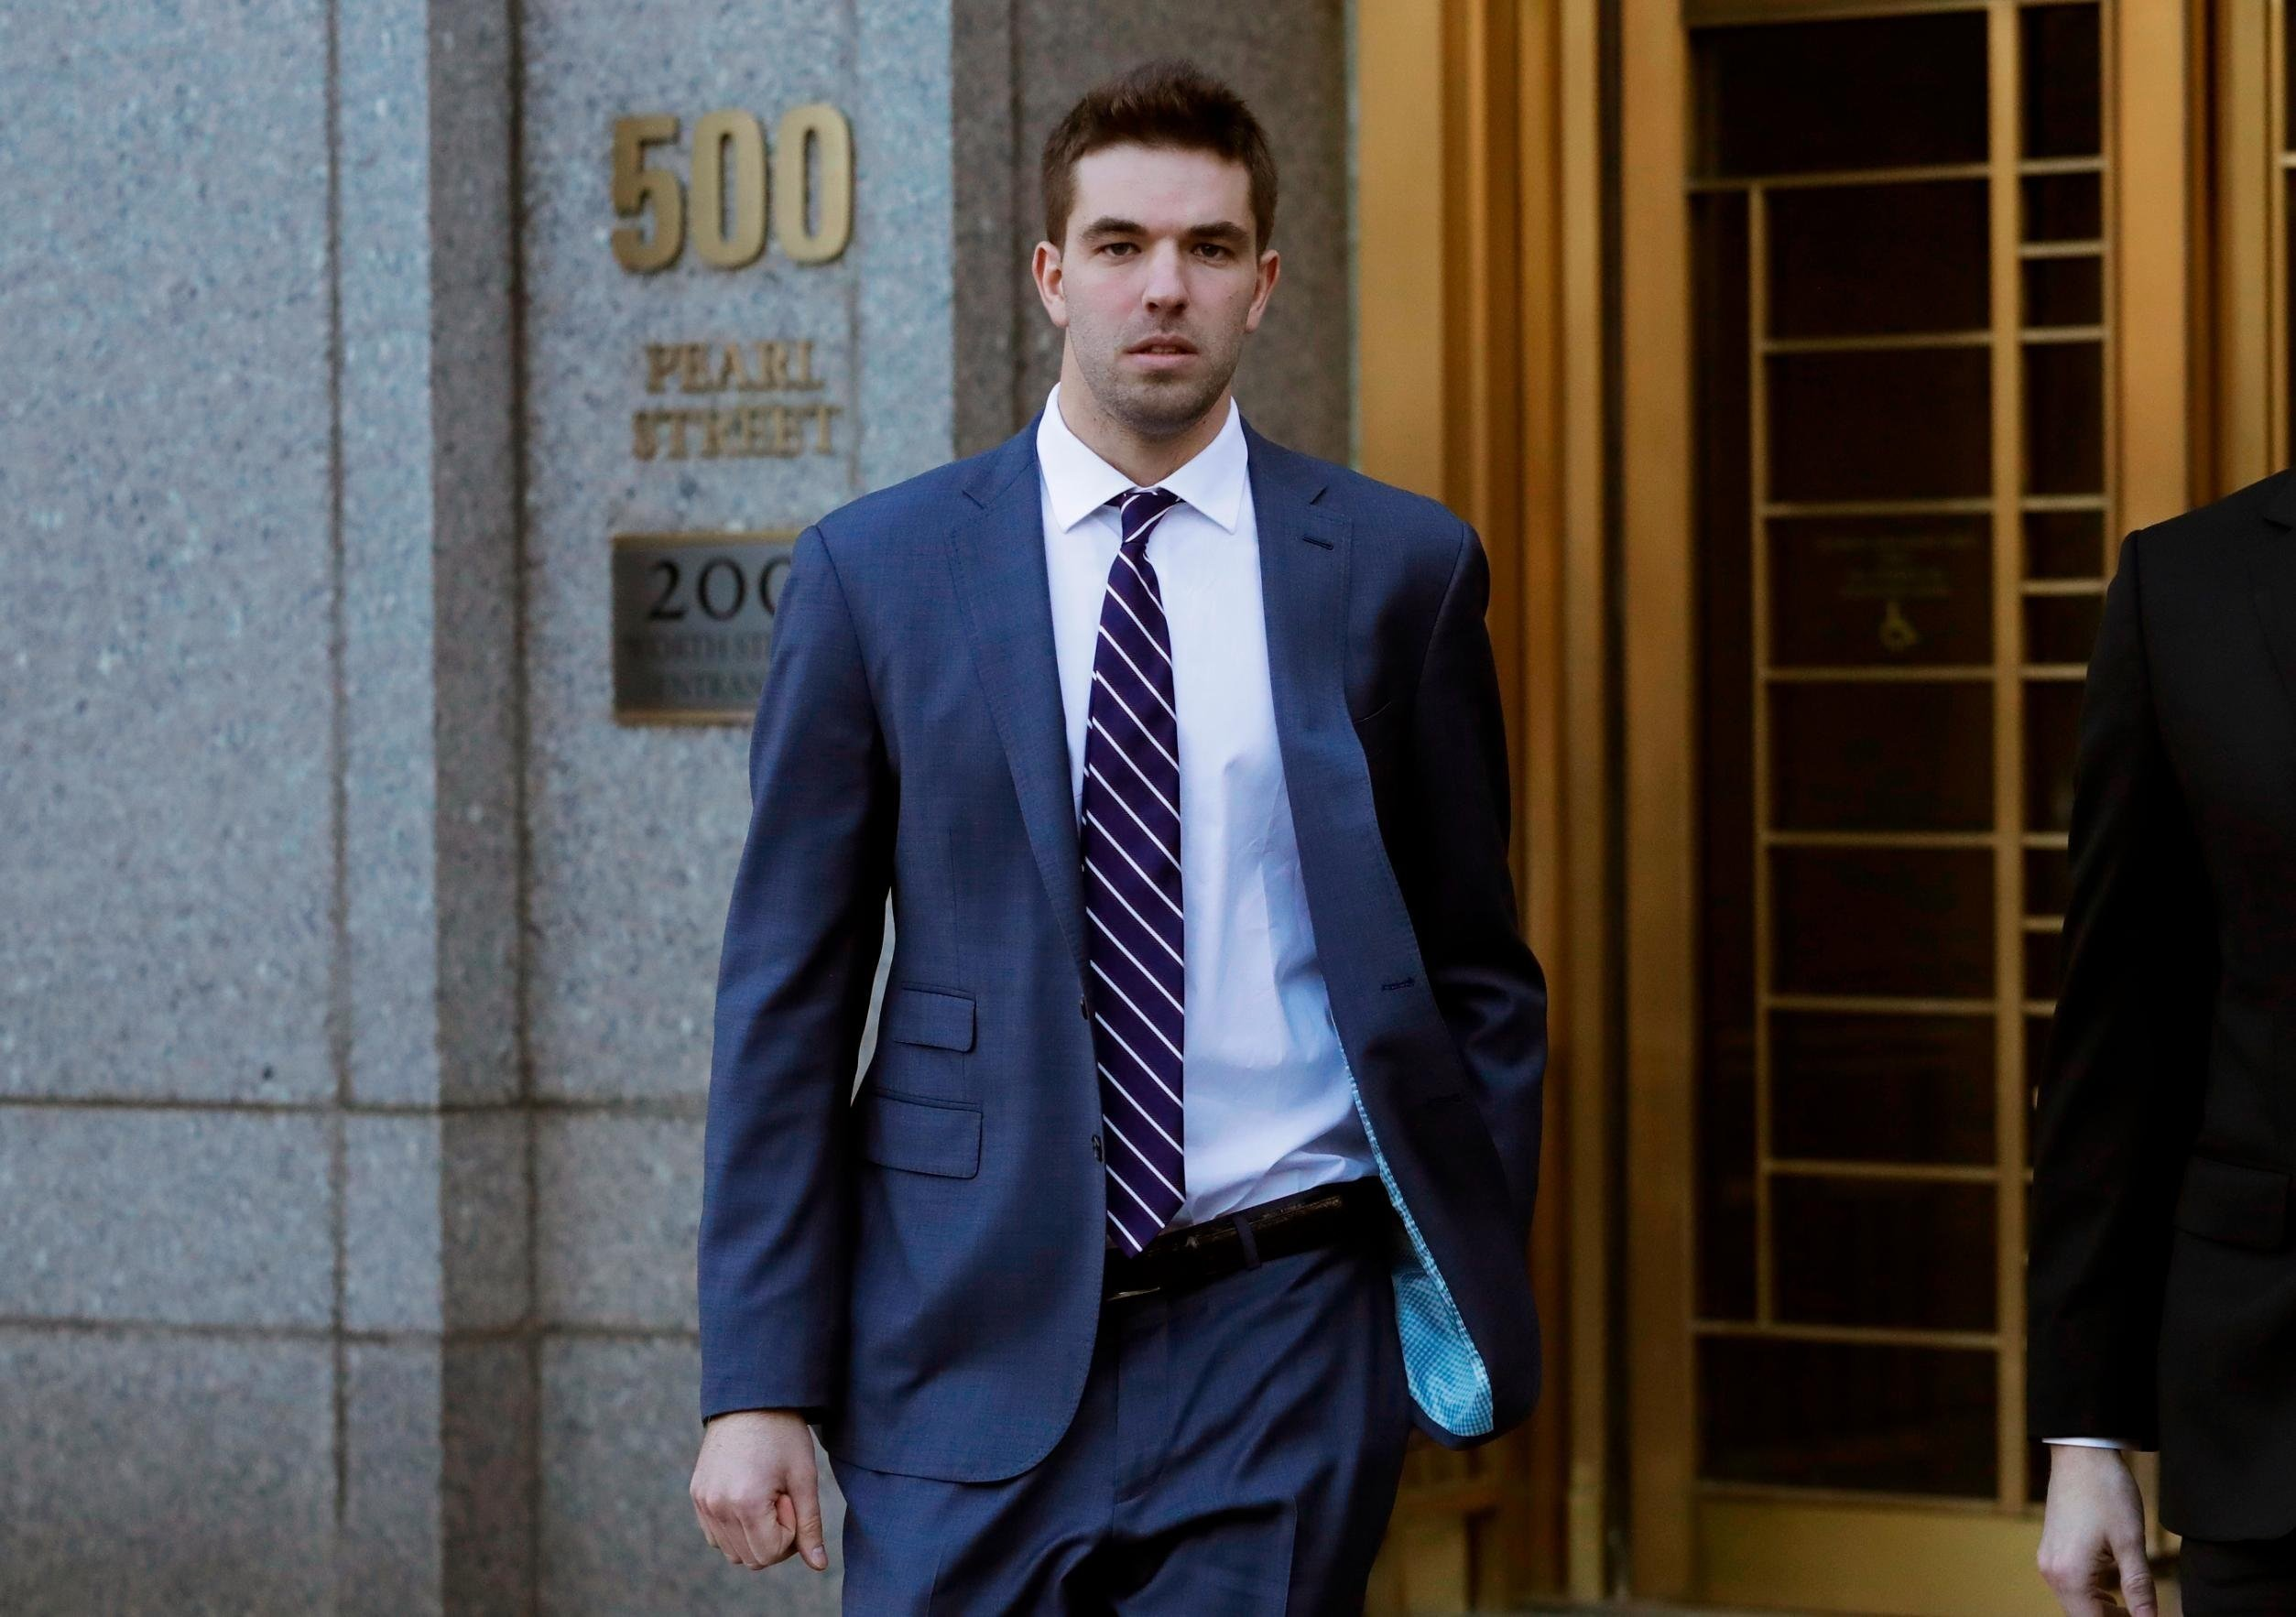 The organizer of last year's infamous Fyre Festival led a scheme involving bogus tickets while he was awaiting sentencing for wire fraud, New York federal prosecutors said on Tuesday.